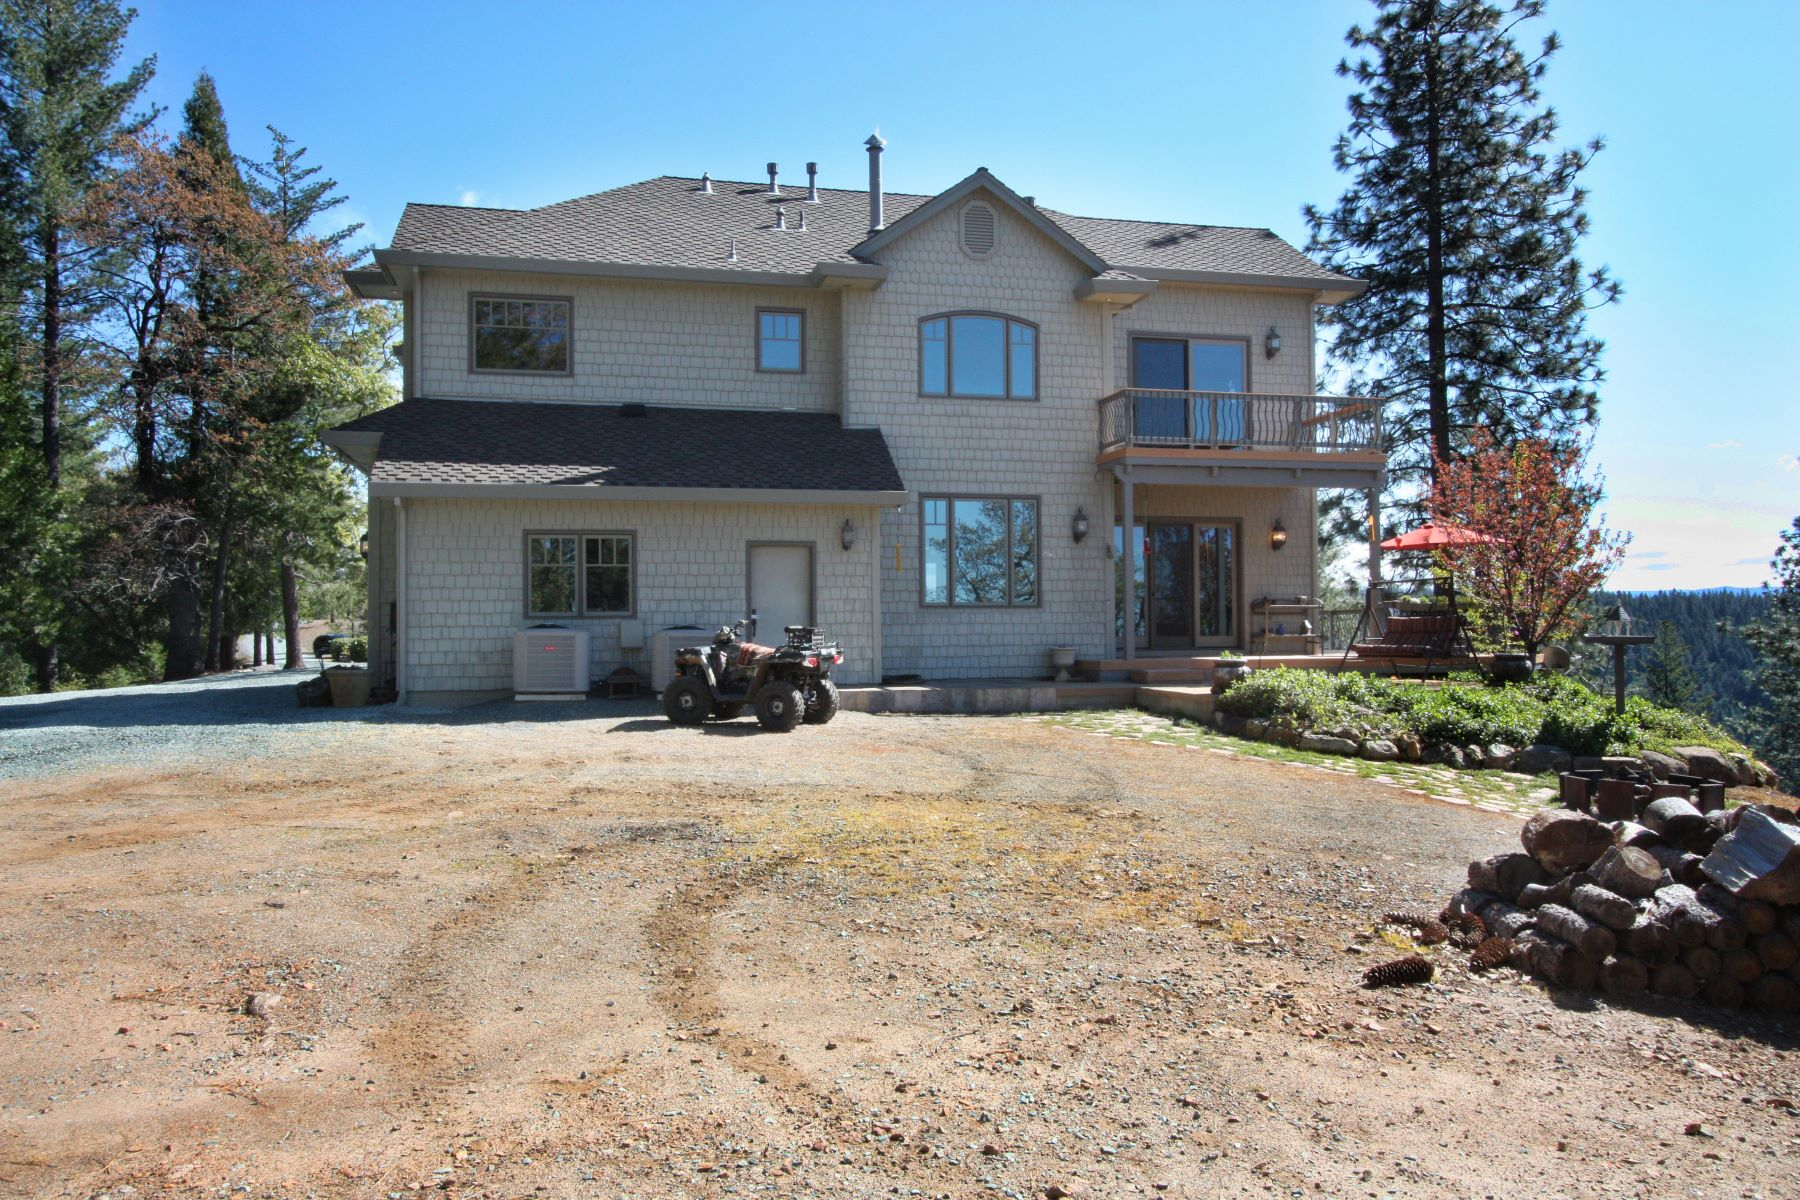 Additional photo for property listing at South View 16771 South View Drive Pioneer, California 95666 United States